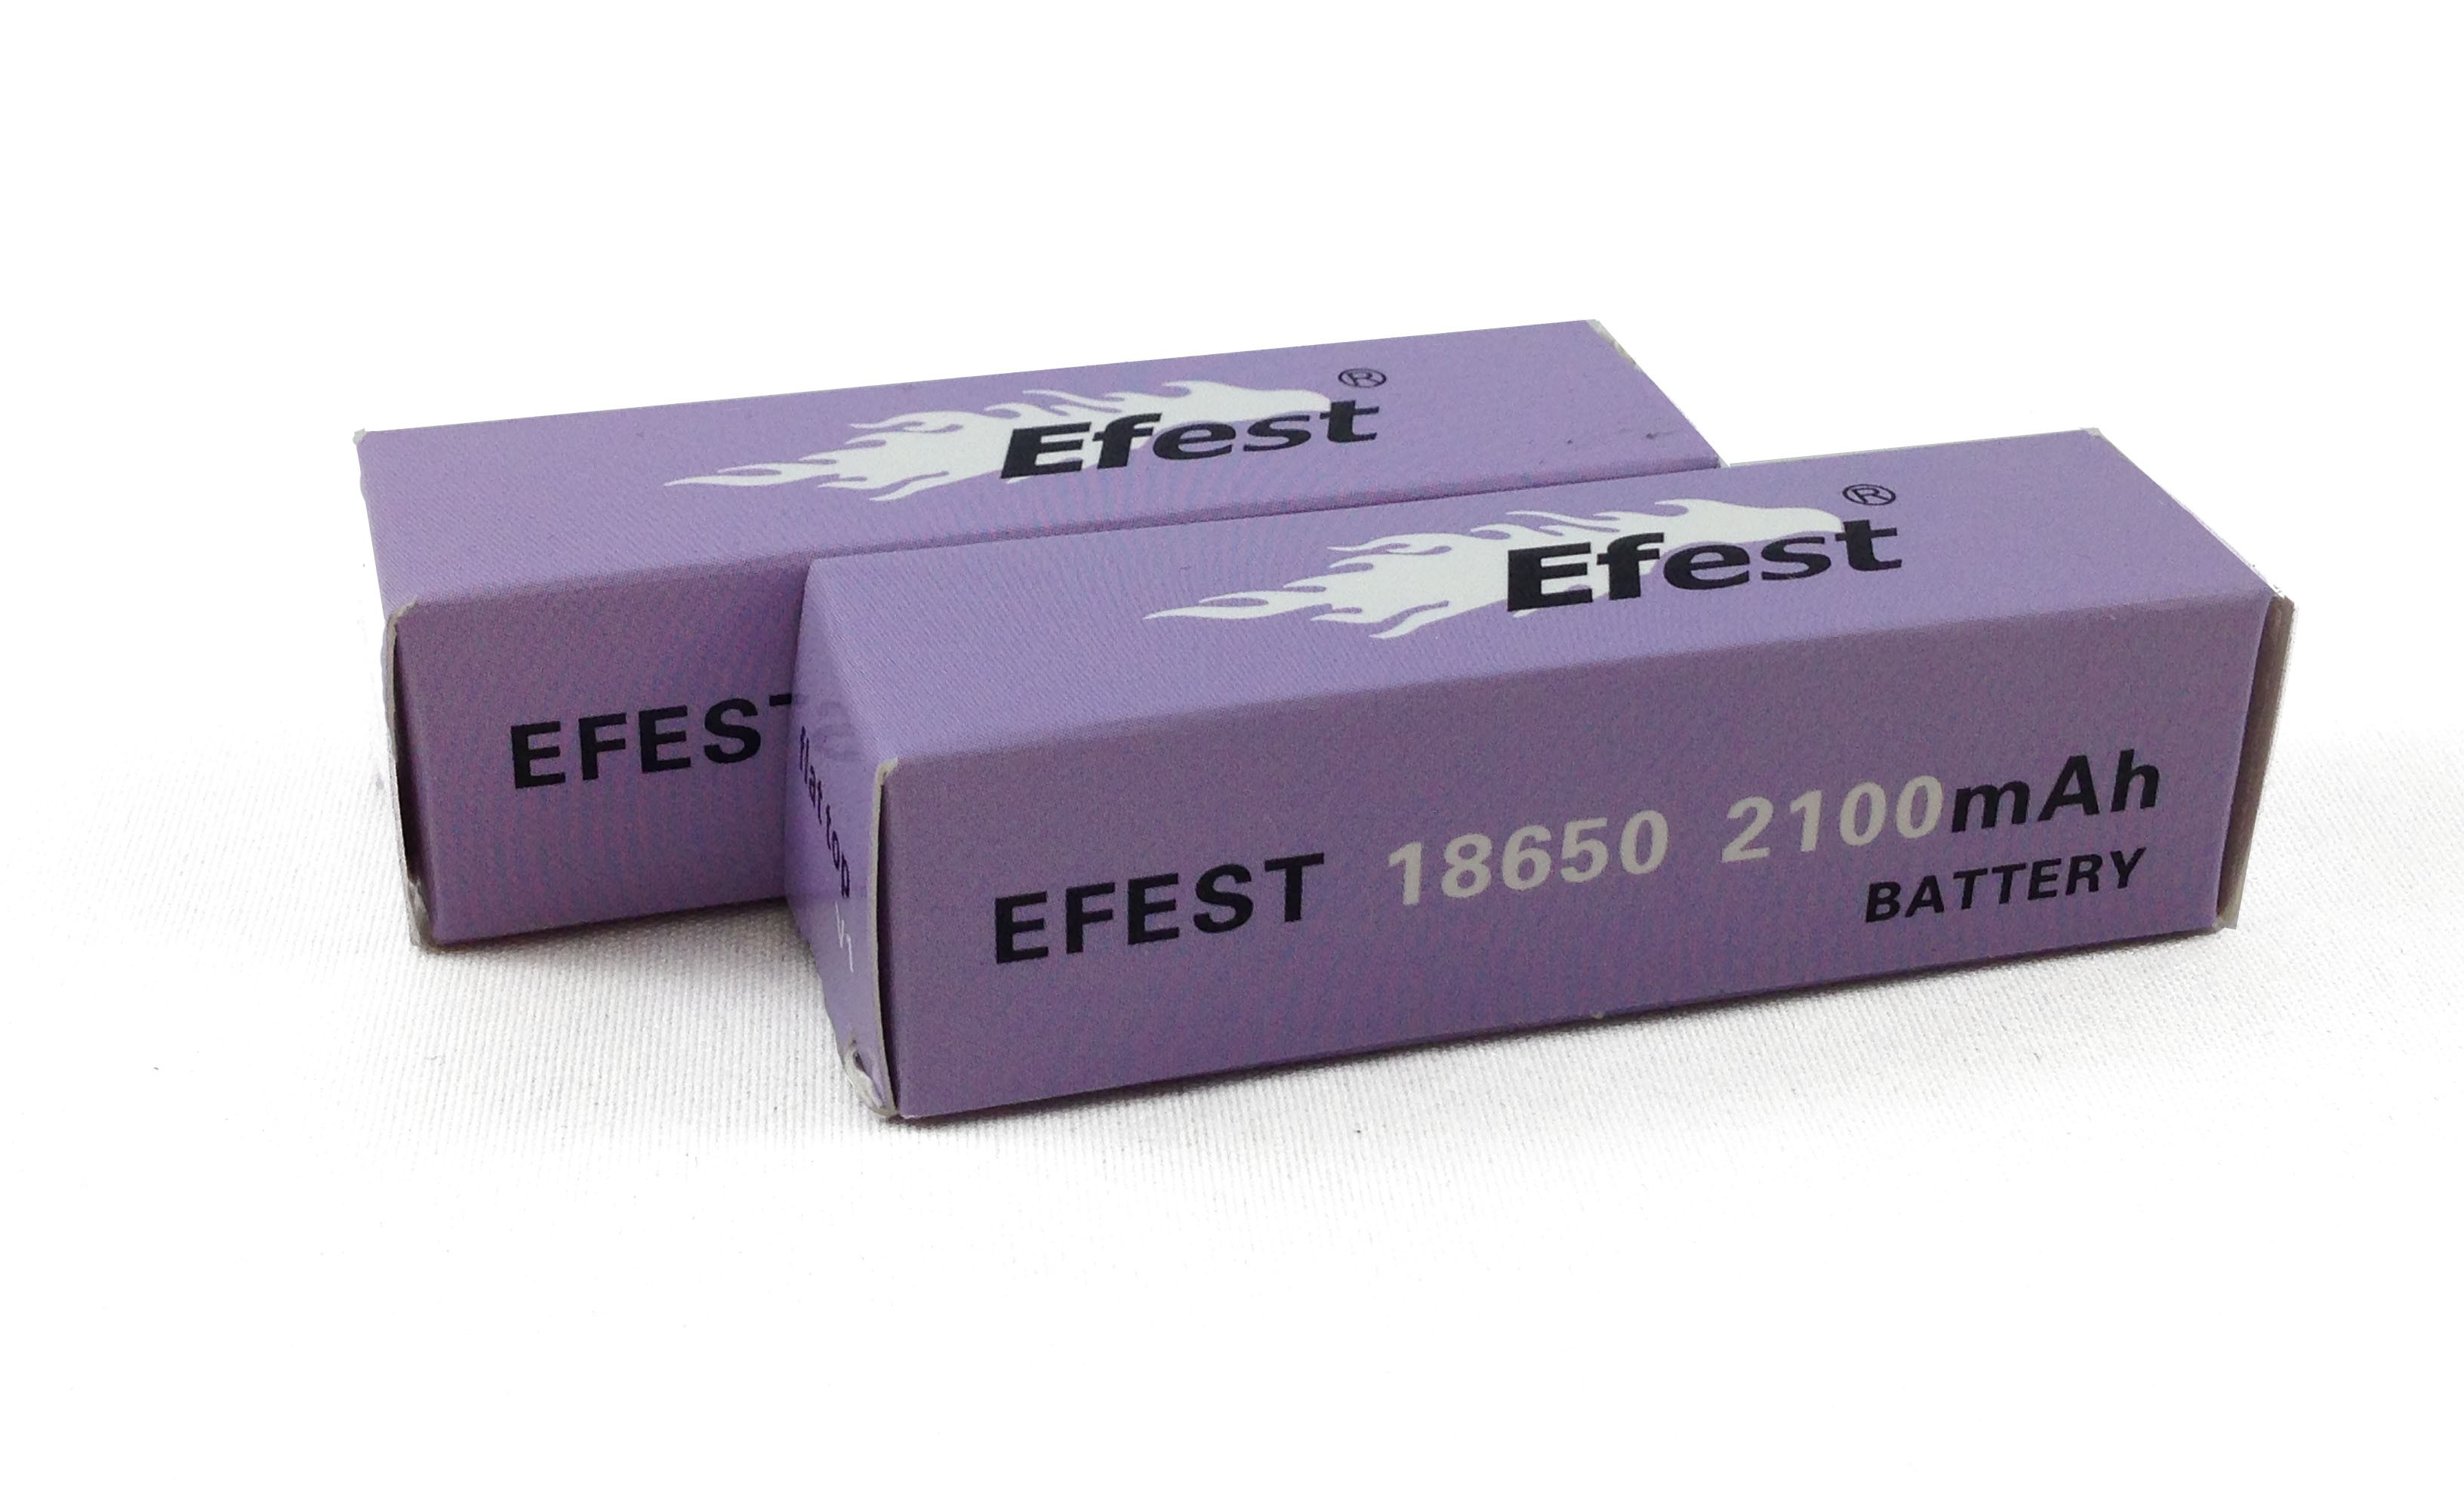 Efest IMR 30A 18650 Flat Top Battery 2100 mAh - 2 Pack